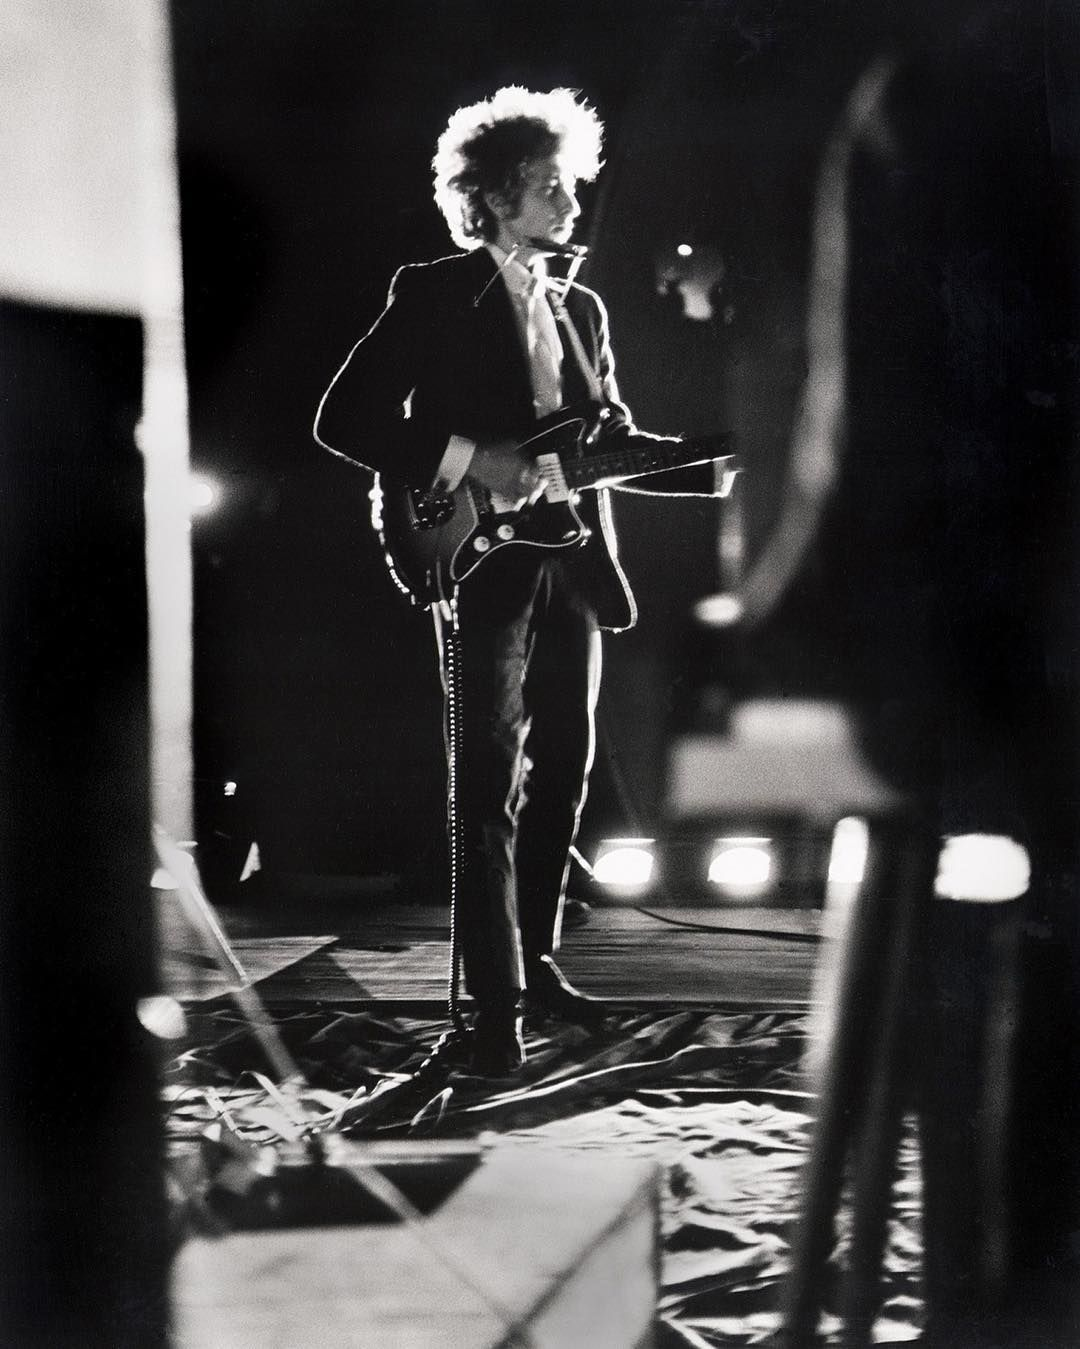 """Nobel Bob: The #singer-songwriter wins the #NobelPrize for Literature #BobDylan has won the Nobel prize for literature celebrated for """"having created new poetic expressions with the great American song tradition"""". The 75-year old legend is the first songwriter to receive the prestigious award selected by the 18 members of the Swedish Academy over other rumored favorites including the Kenyan Ngugi Wa Thiongo the American Don DeLillo and the Japanese Haruki Murakami. Dylan was born Robert…"""